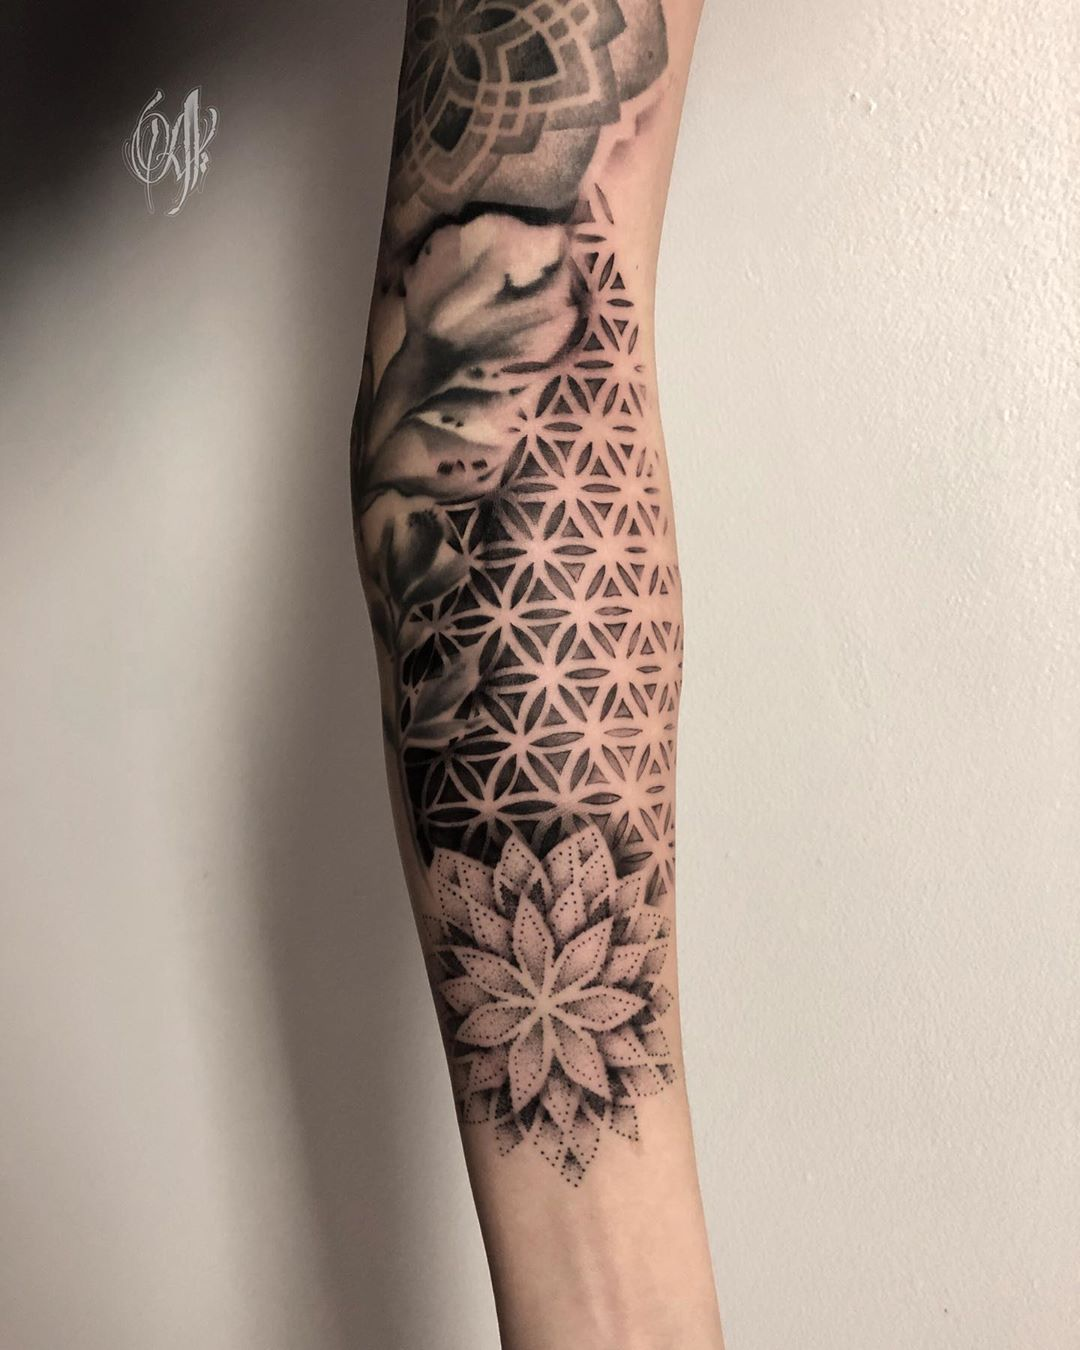 Mandala tattoo by Alveno